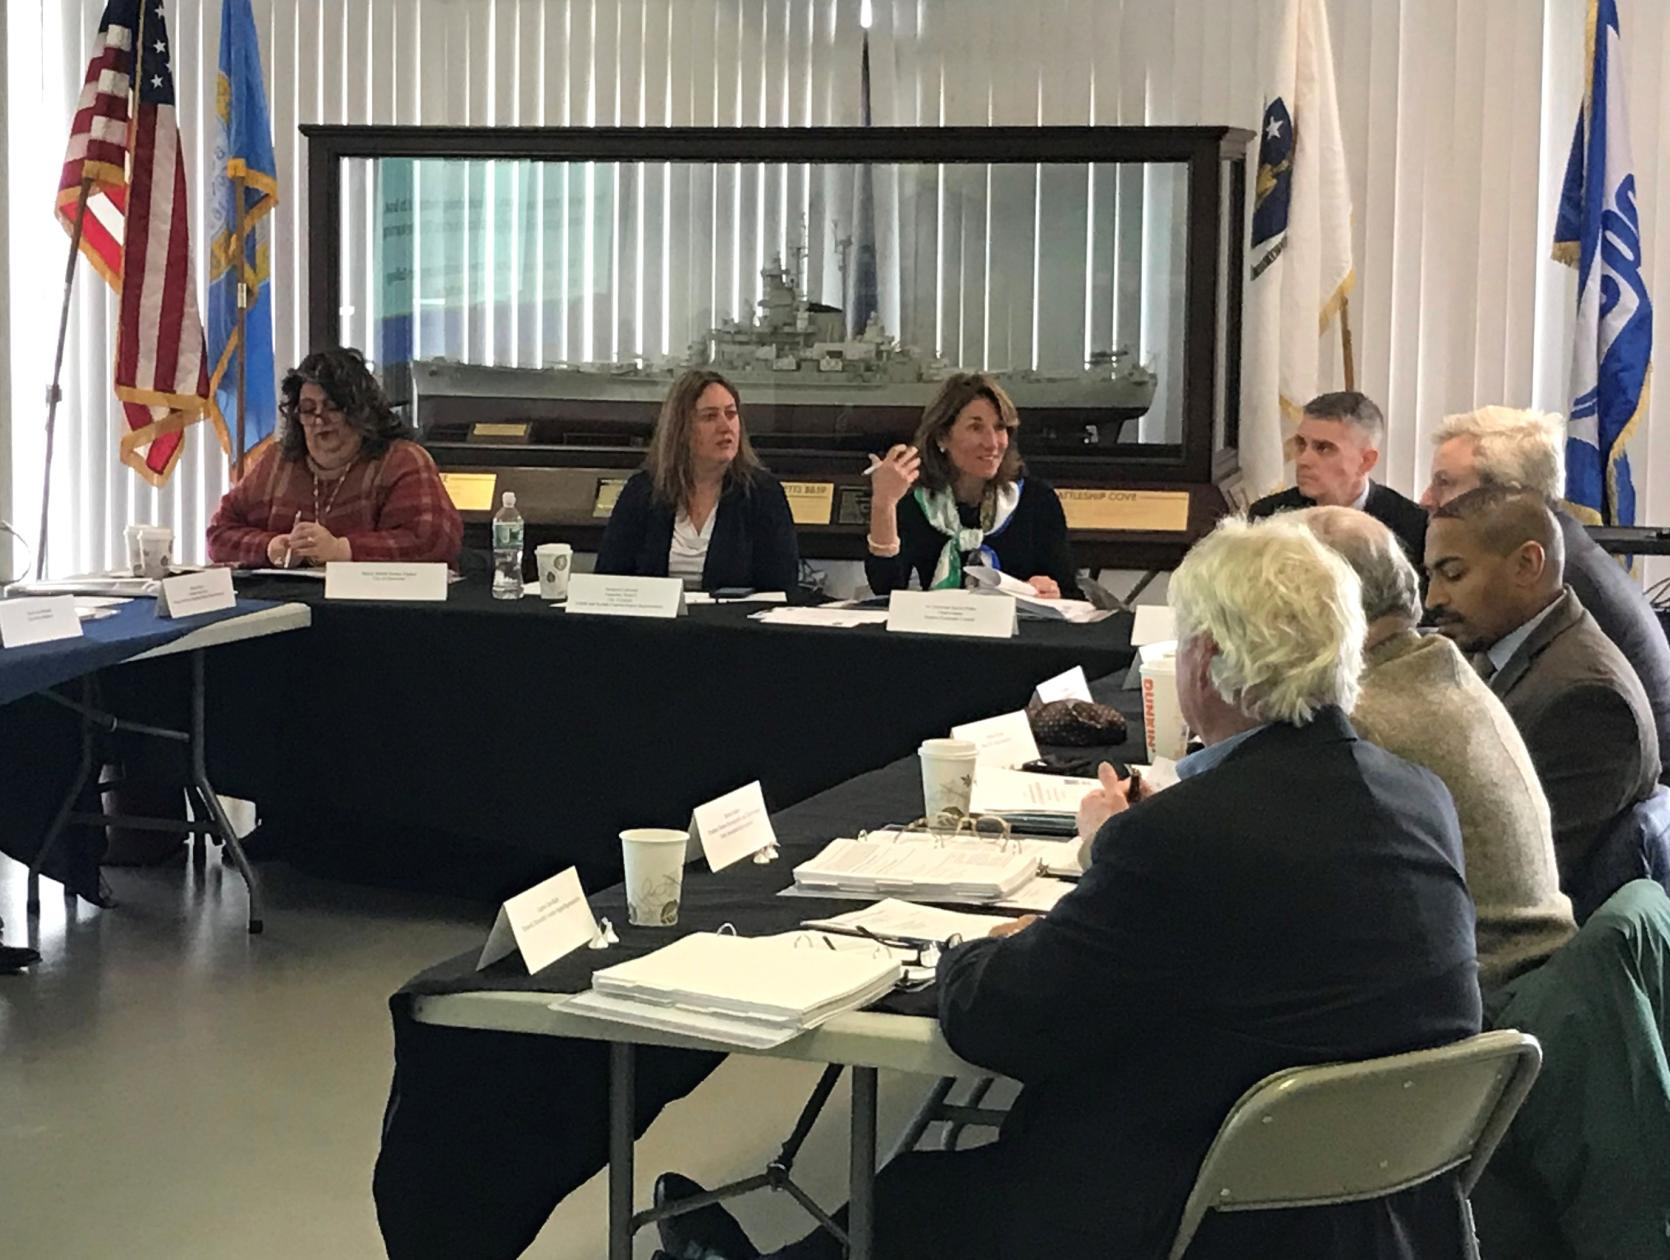 Lt. Governor Karyn Polito speaks at Wednesday's Seaport Economic Council meeting.